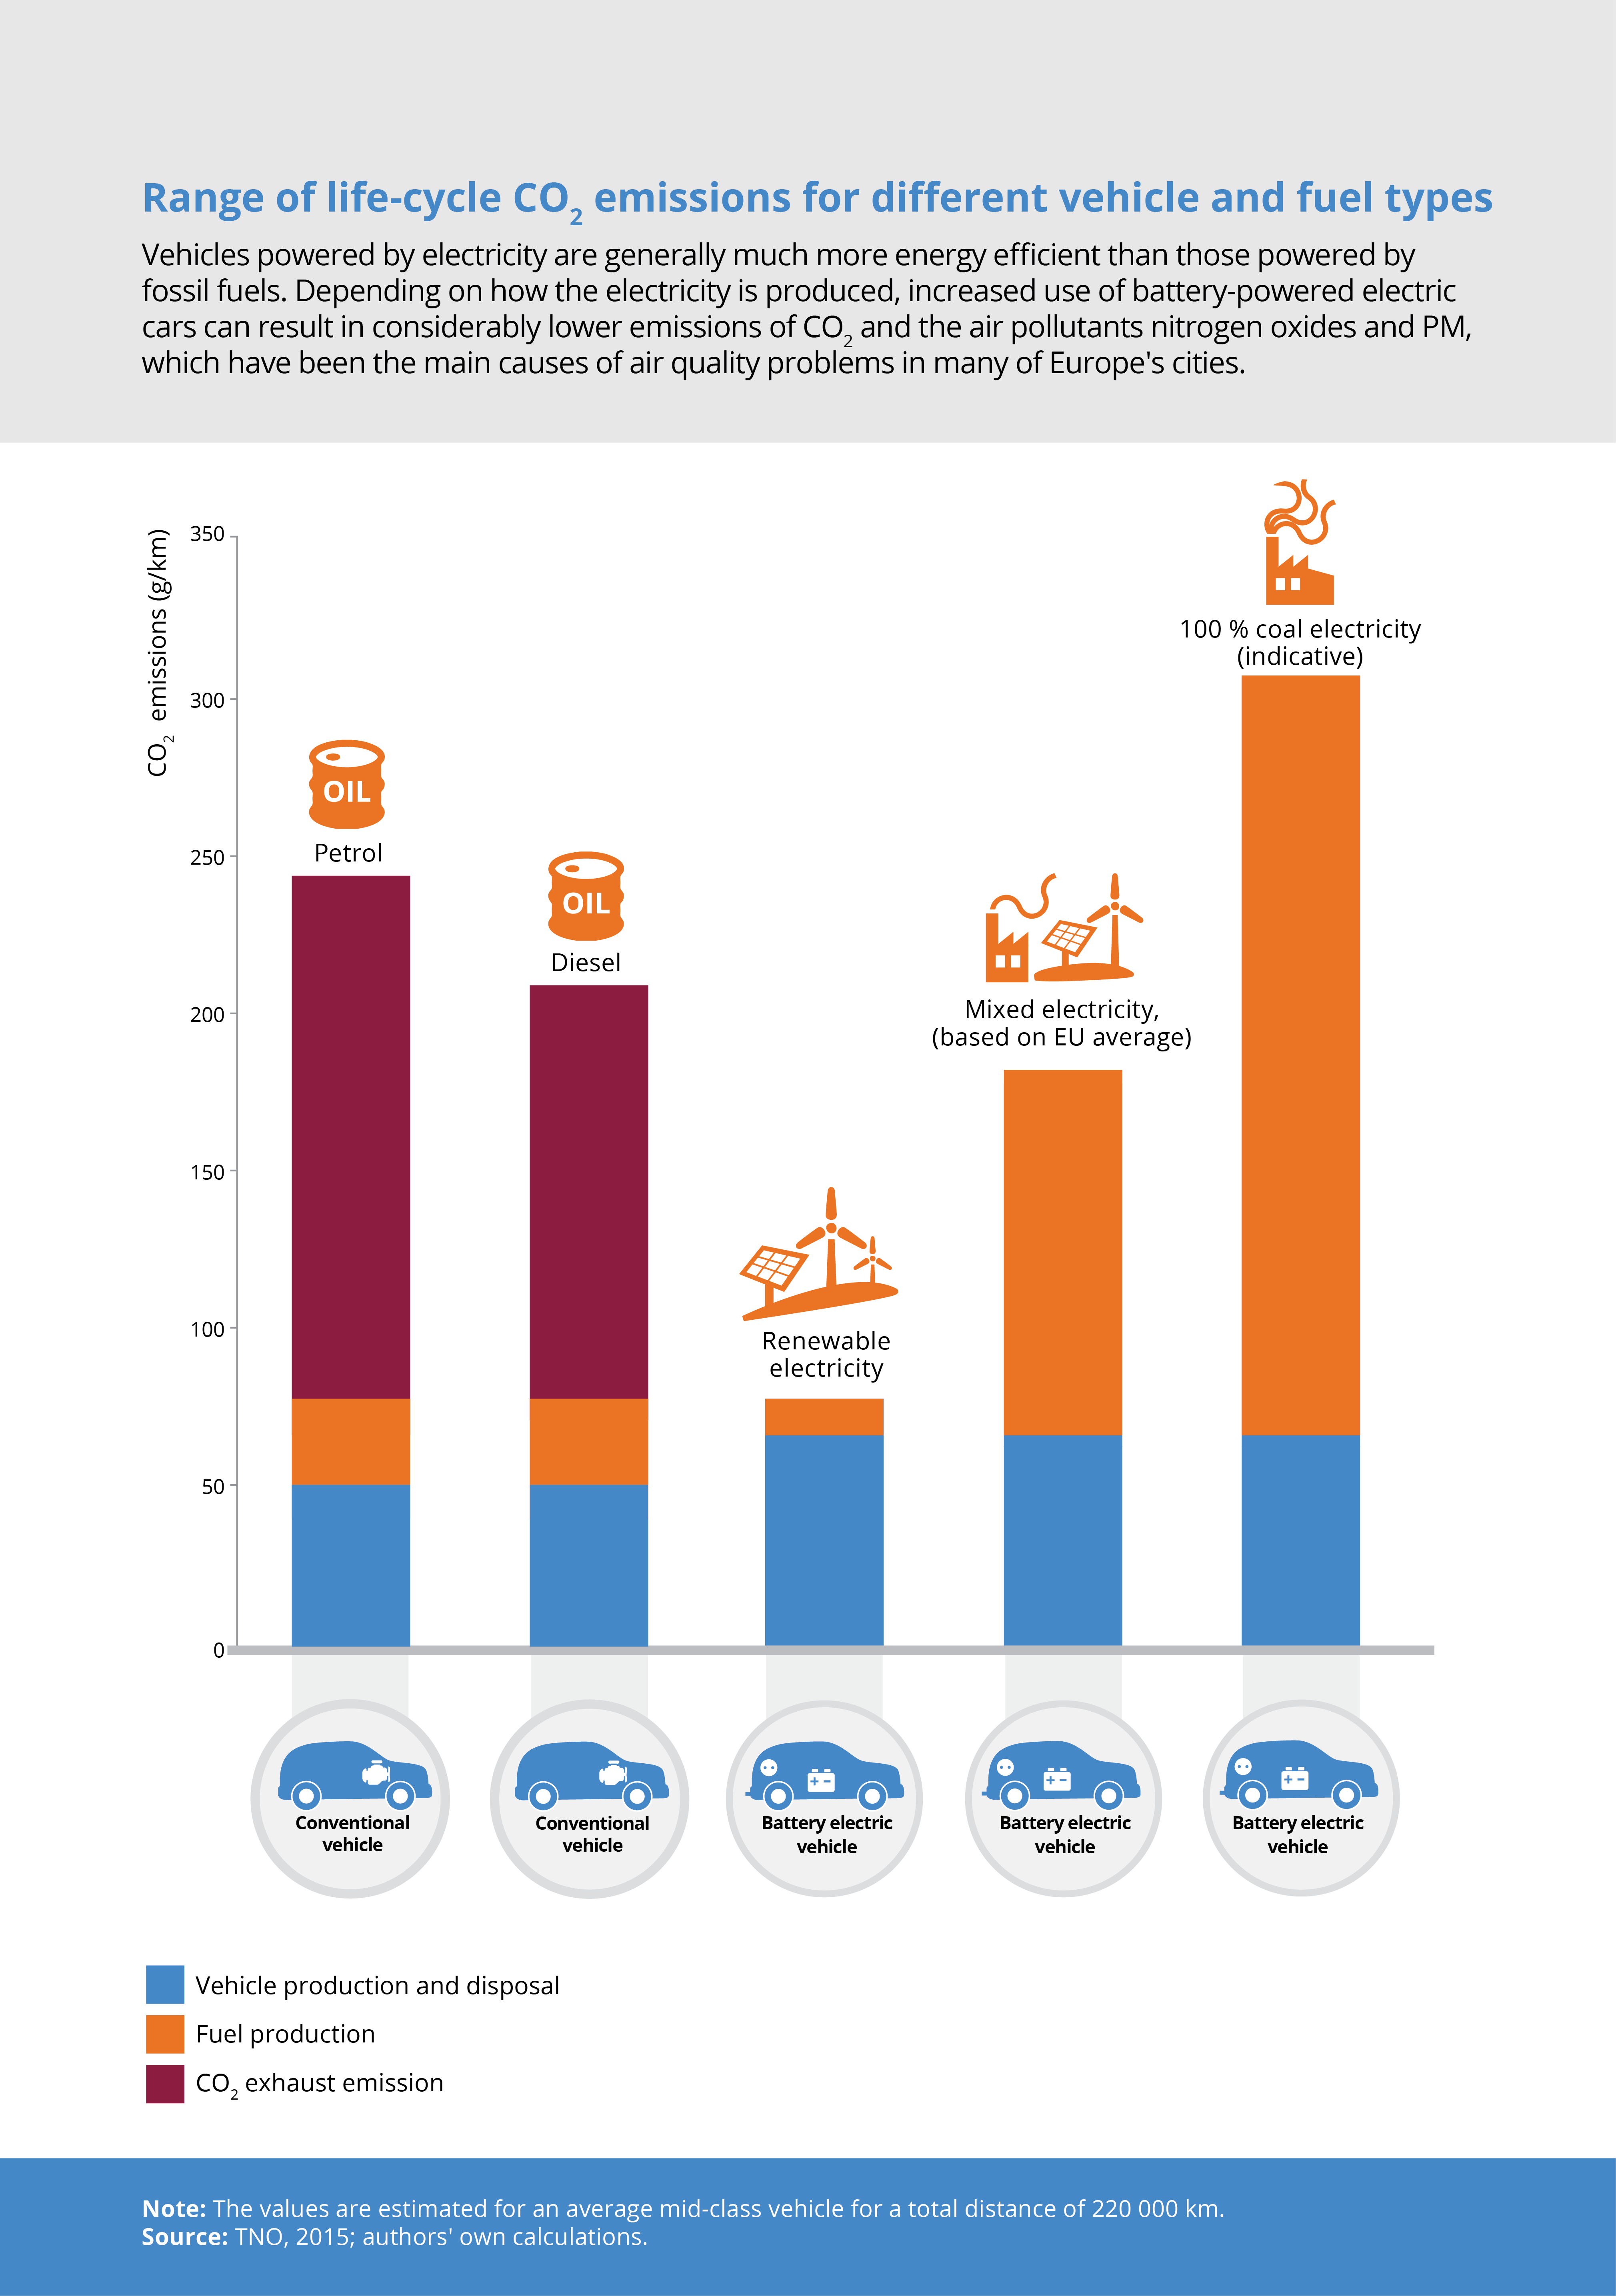 Range of life-cycle CO2 emissions for different vehicle and fuel types